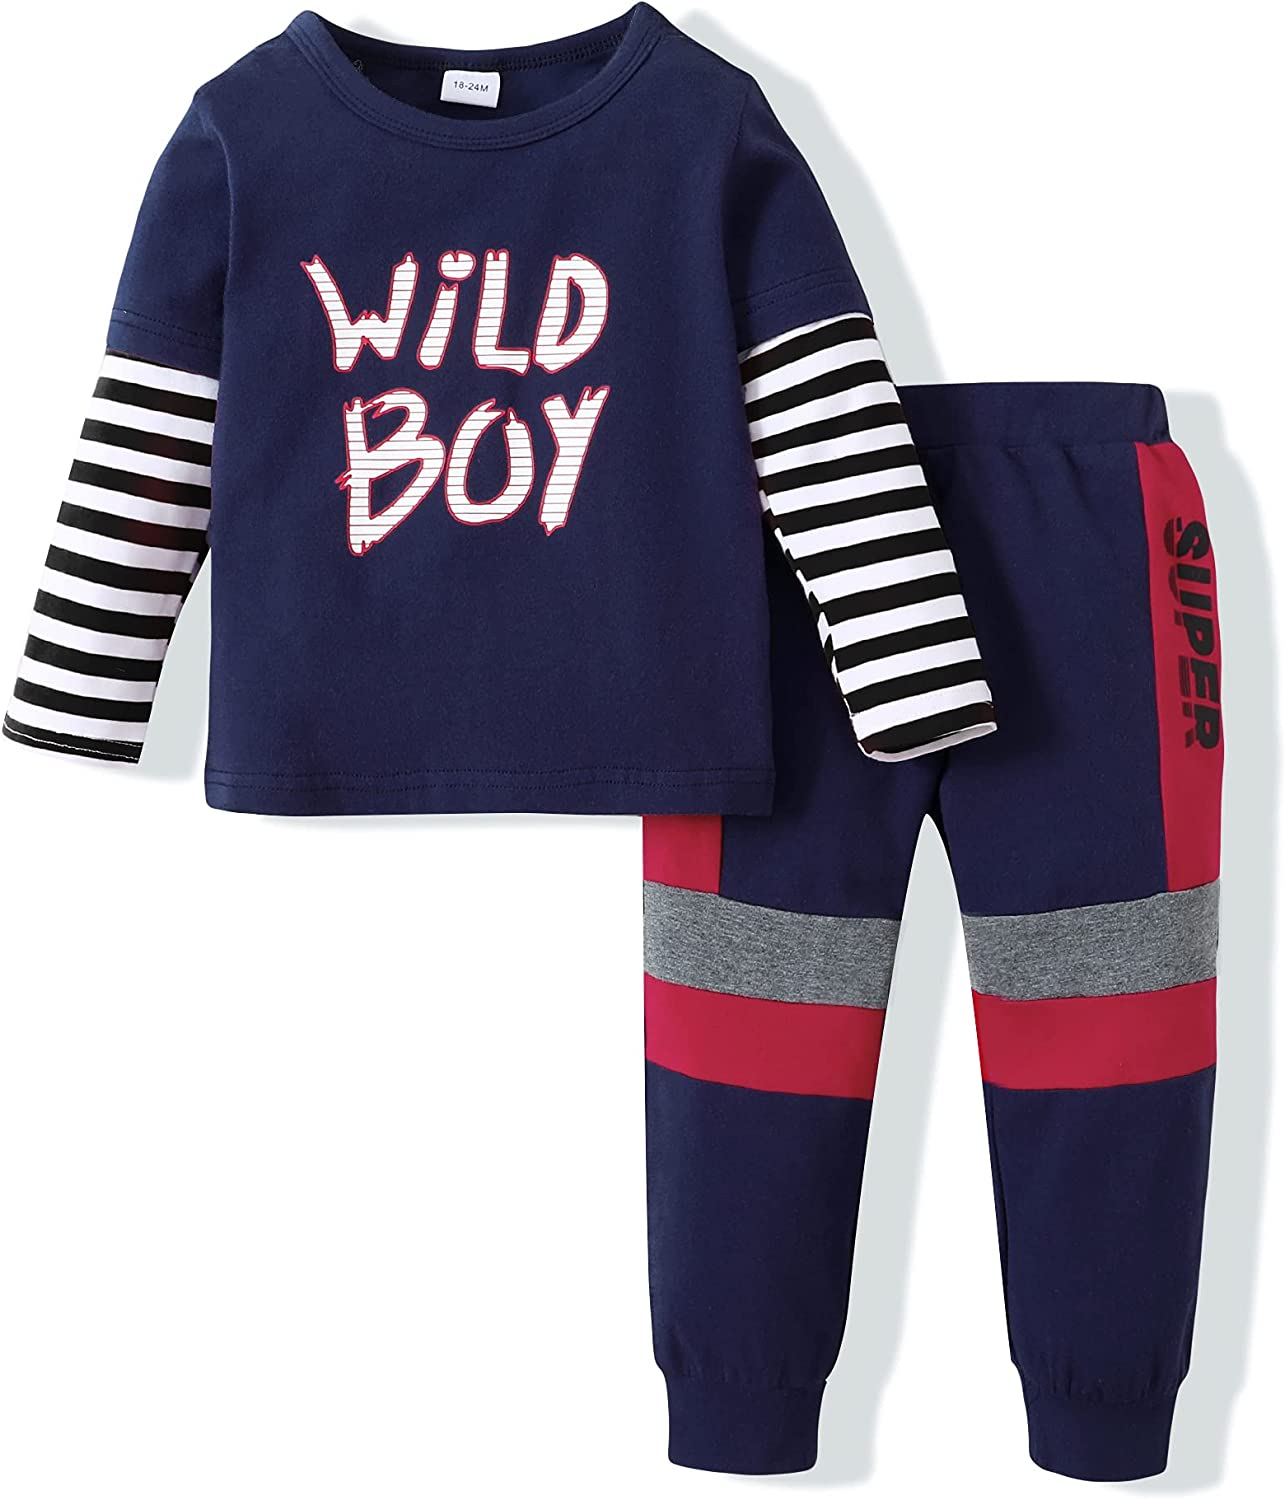 Toddler Baby Boy Clothes Long Sleeve Tops Pants Set Kids Little Boy Clothing Sweatsuit Fall Winter Outfits Set